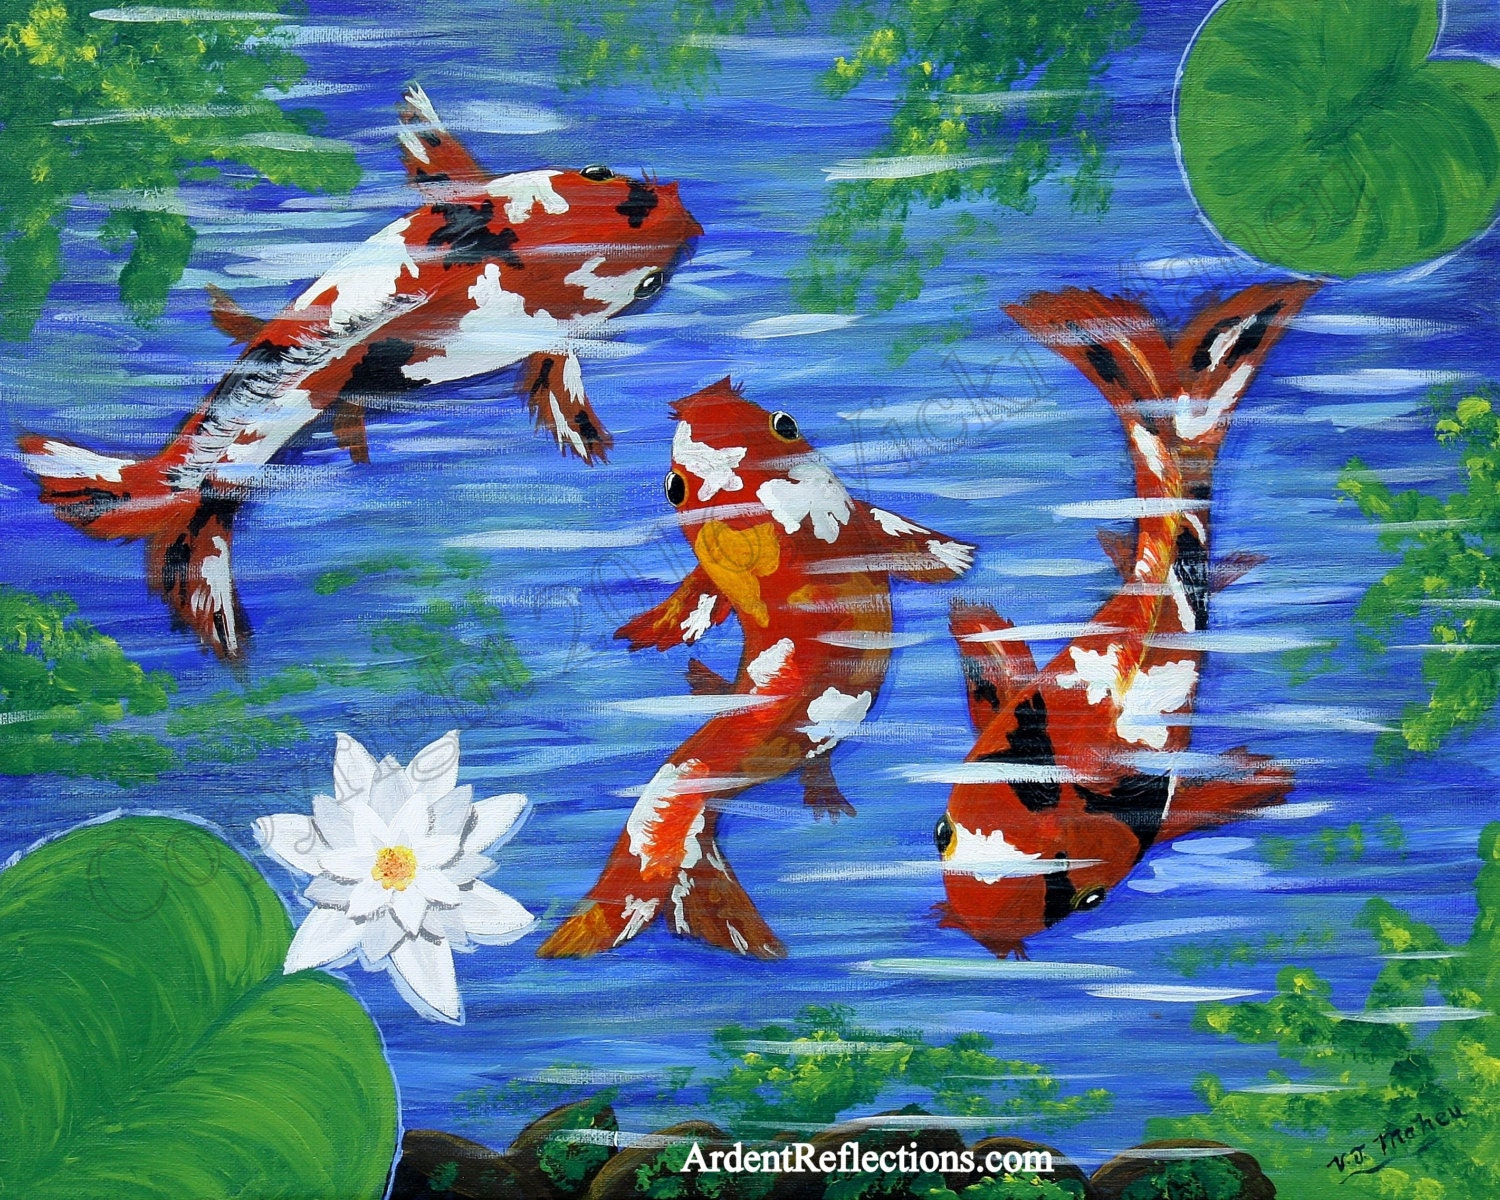 Koi fish decor koi fish home decor koi fish art koi fish for Koi home decor